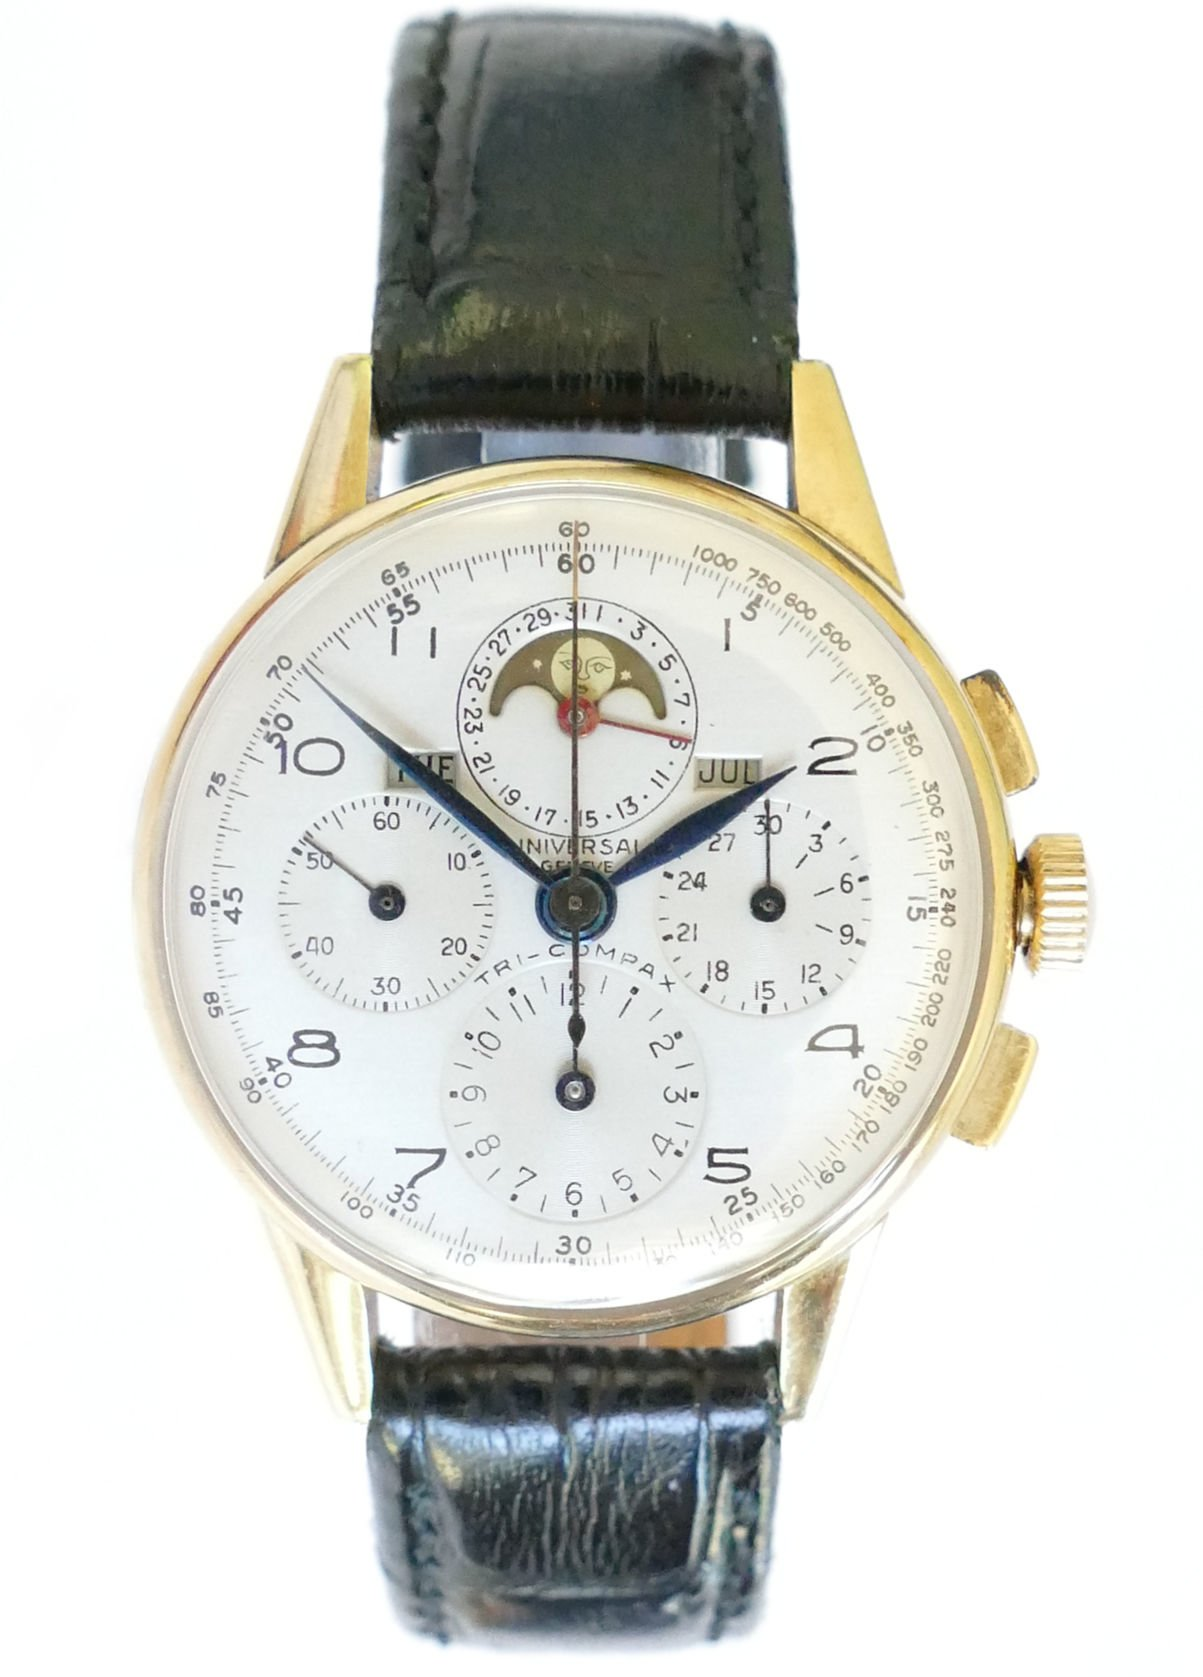 Universal Geneve Tri-Compax 14K Solid Gold Vintage Chronograph Watch